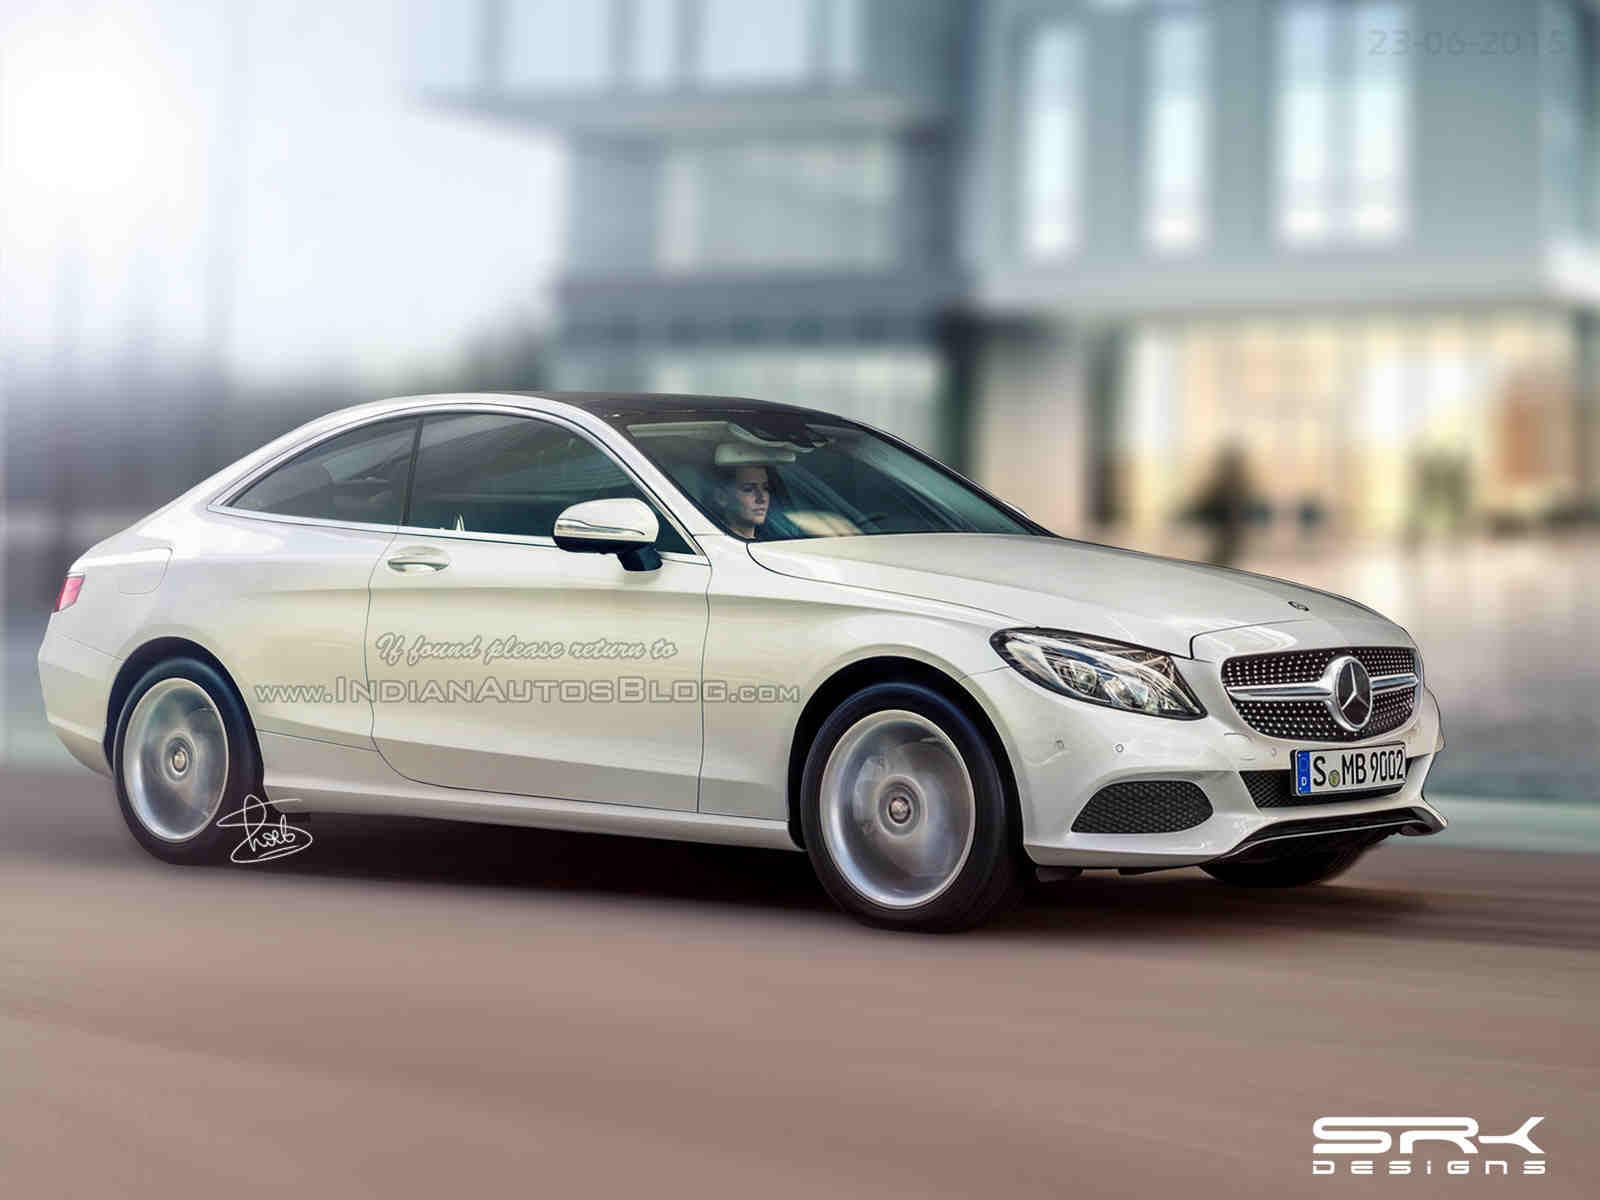 2016 mercedes benz c class coupe spy shots and render for 2016 mercedes benz e class coupe